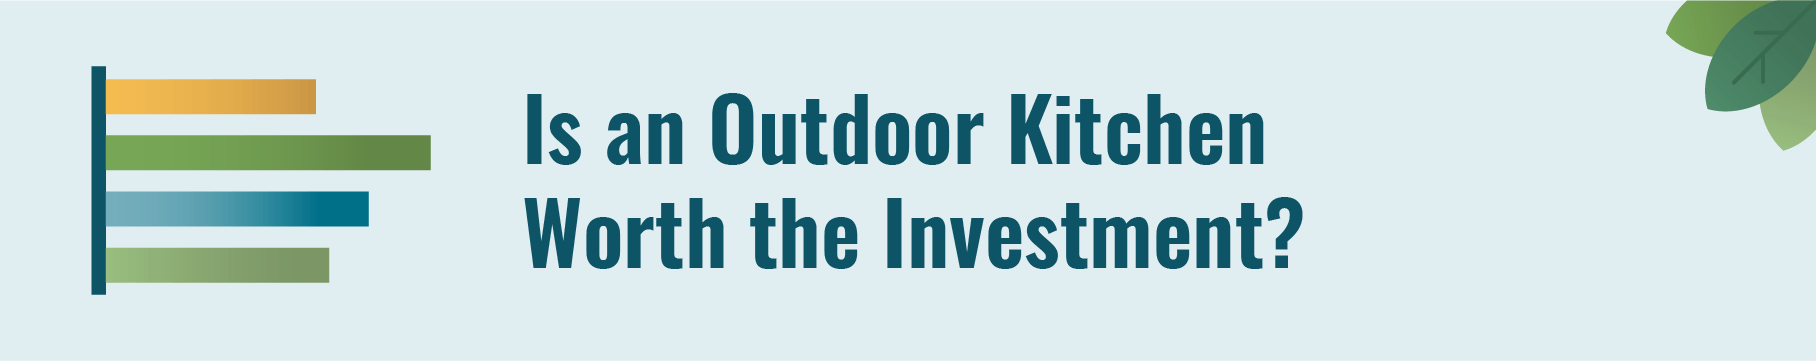 Is an outdoor kitchen worth the investment?